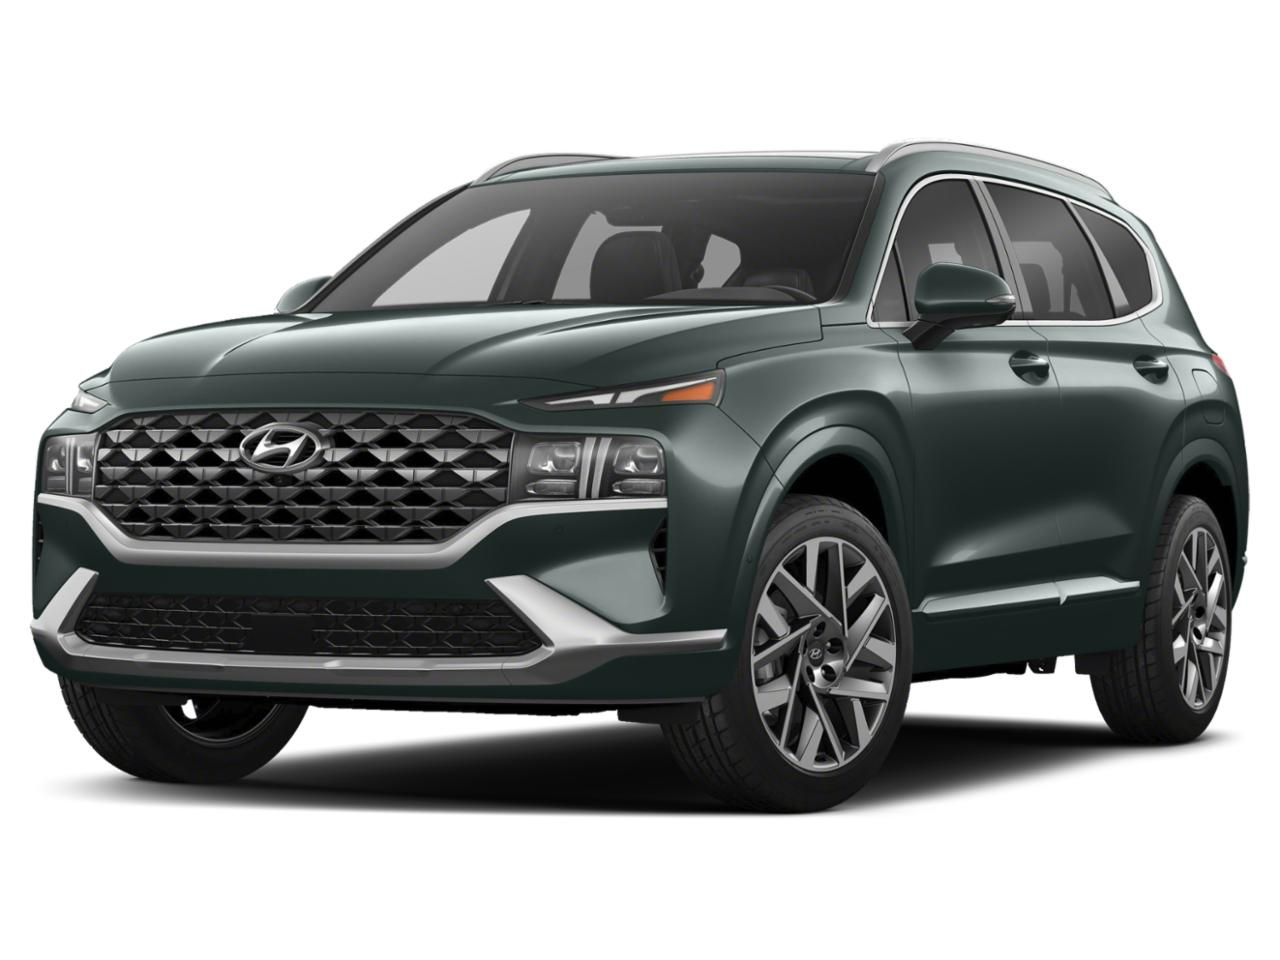 2021 Hyundai Santa Fe Vehicle Photo in O'Fallon, IL 62269